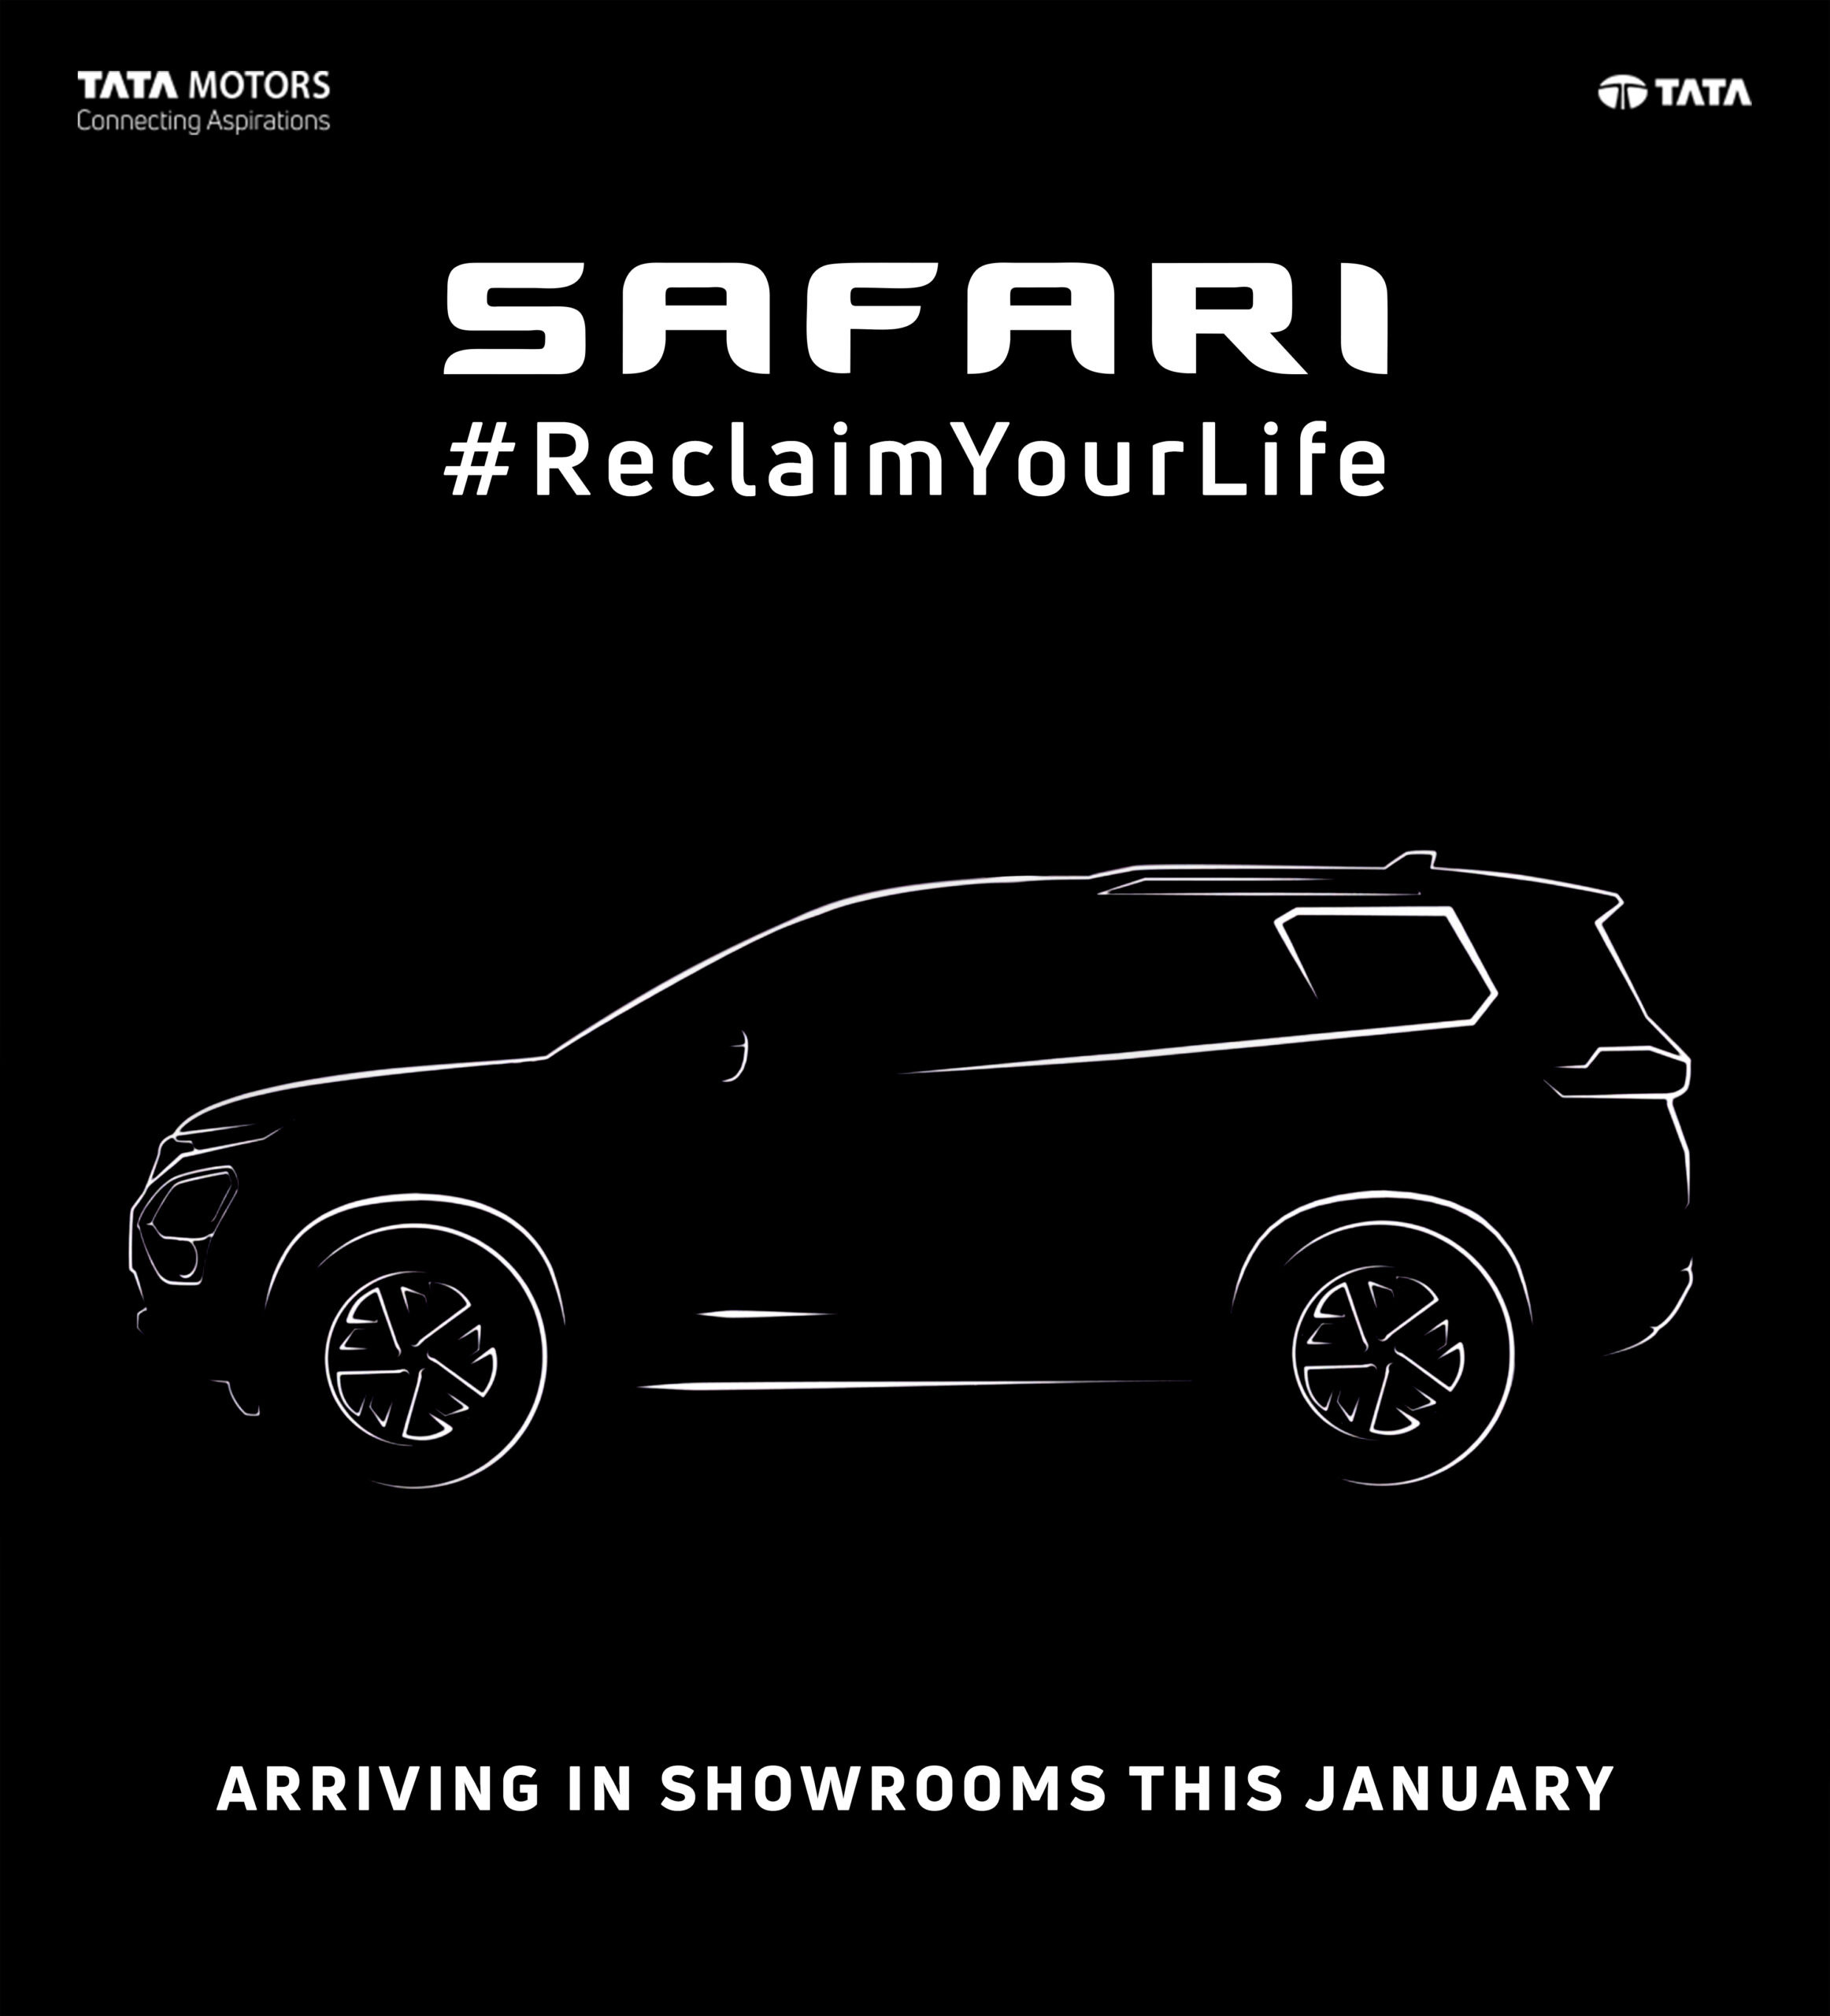 Tata Safari to relaunch in January